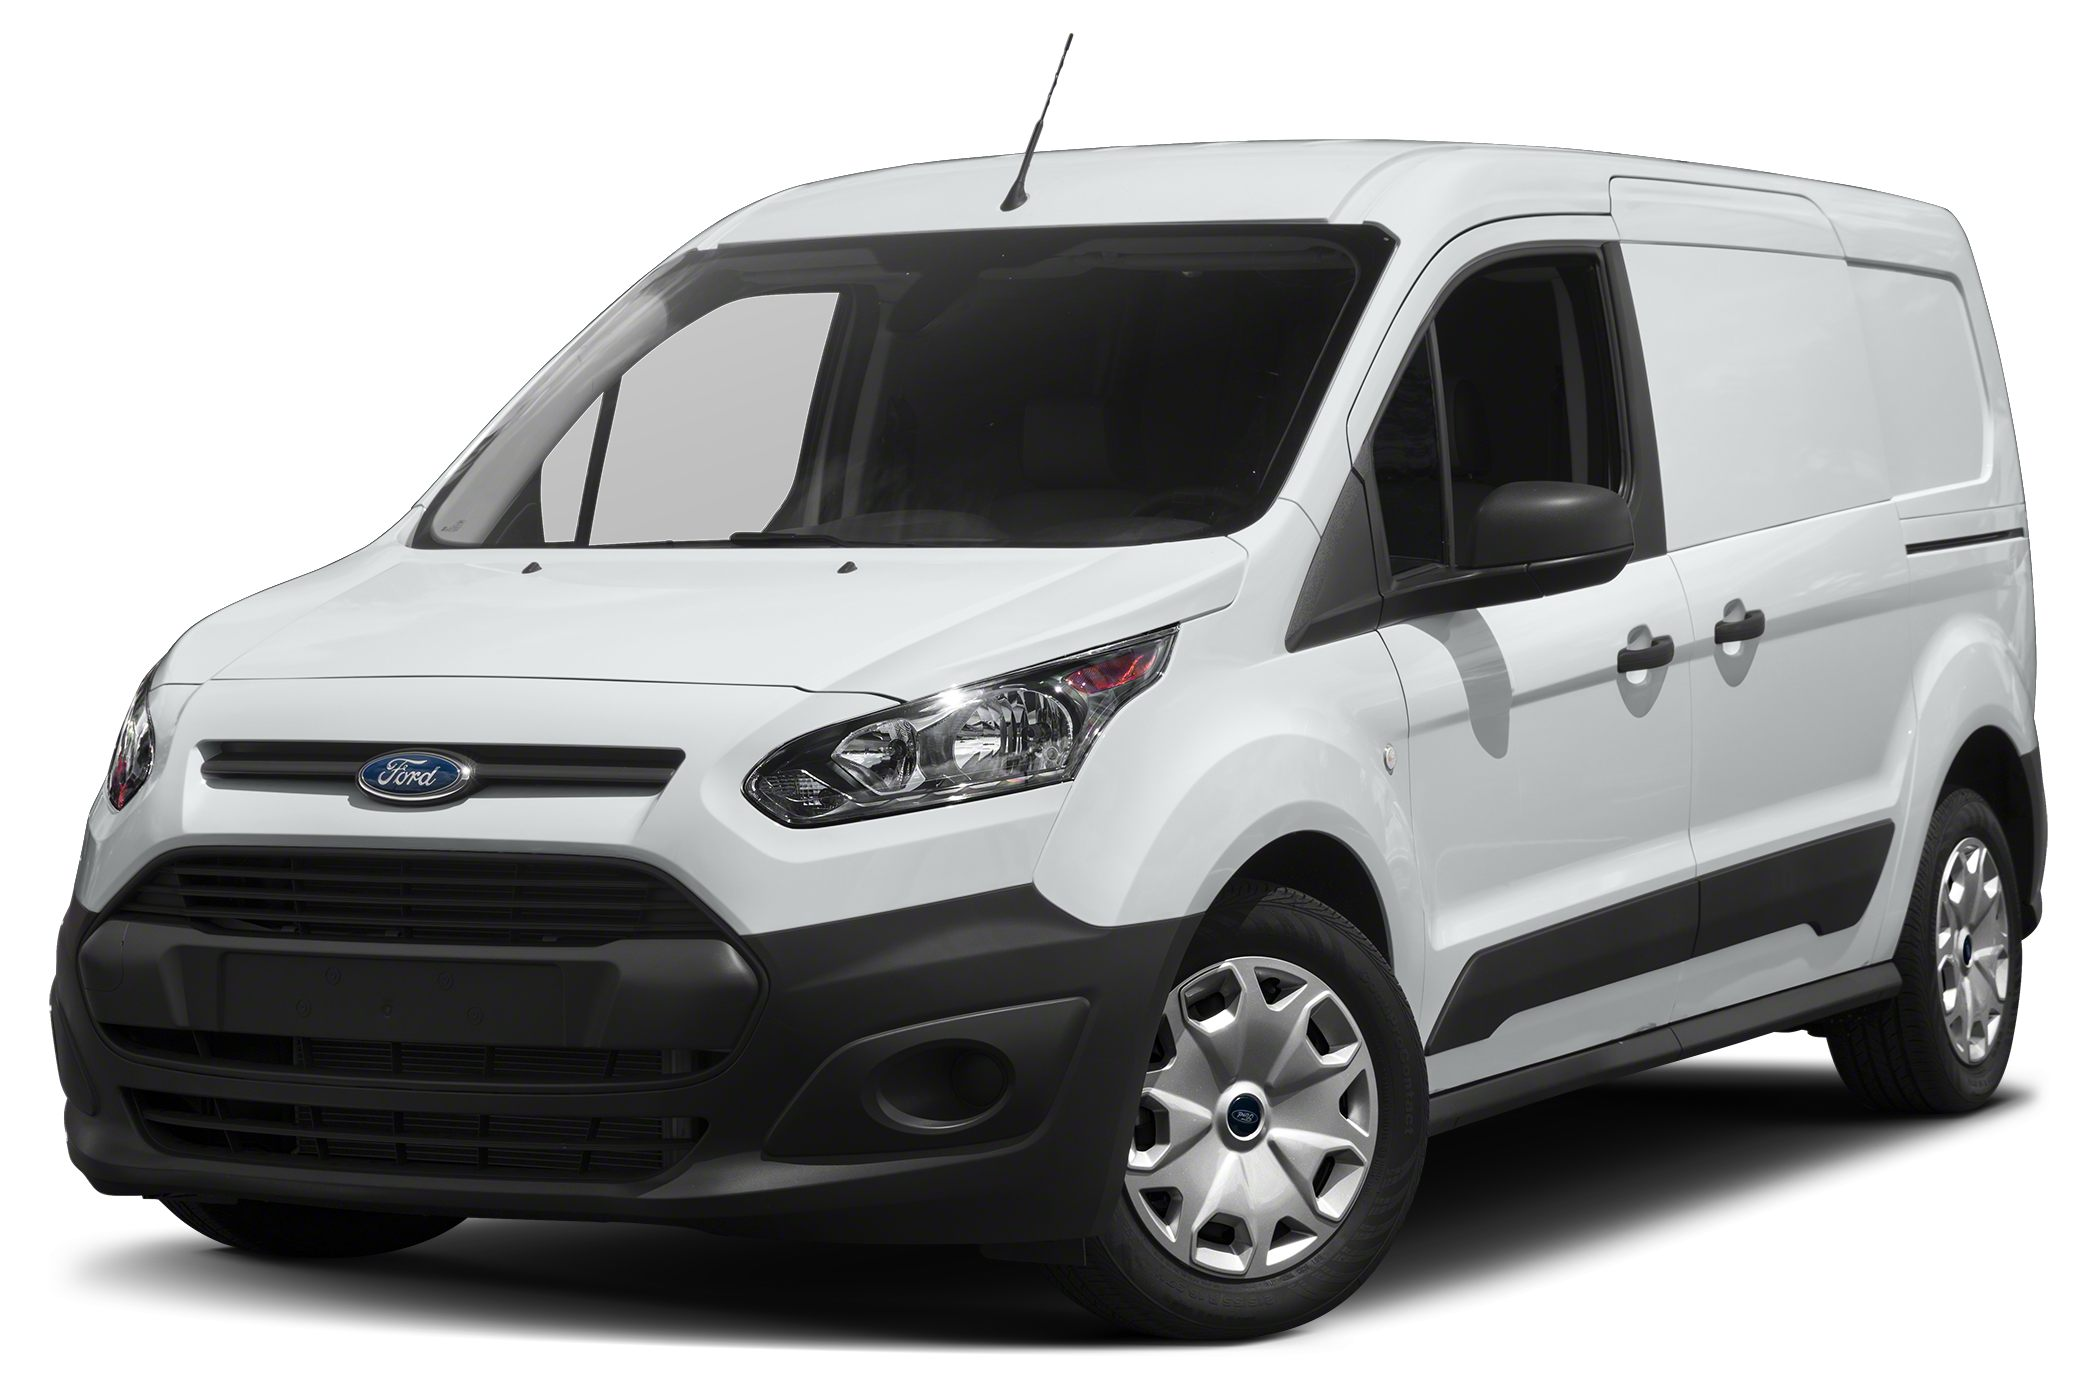 2018 Fort Transit >> 2017 FORD TRANSIT CONNECT XL | Cars and Vehicles | Fort Walton Beach FL | recycler.com